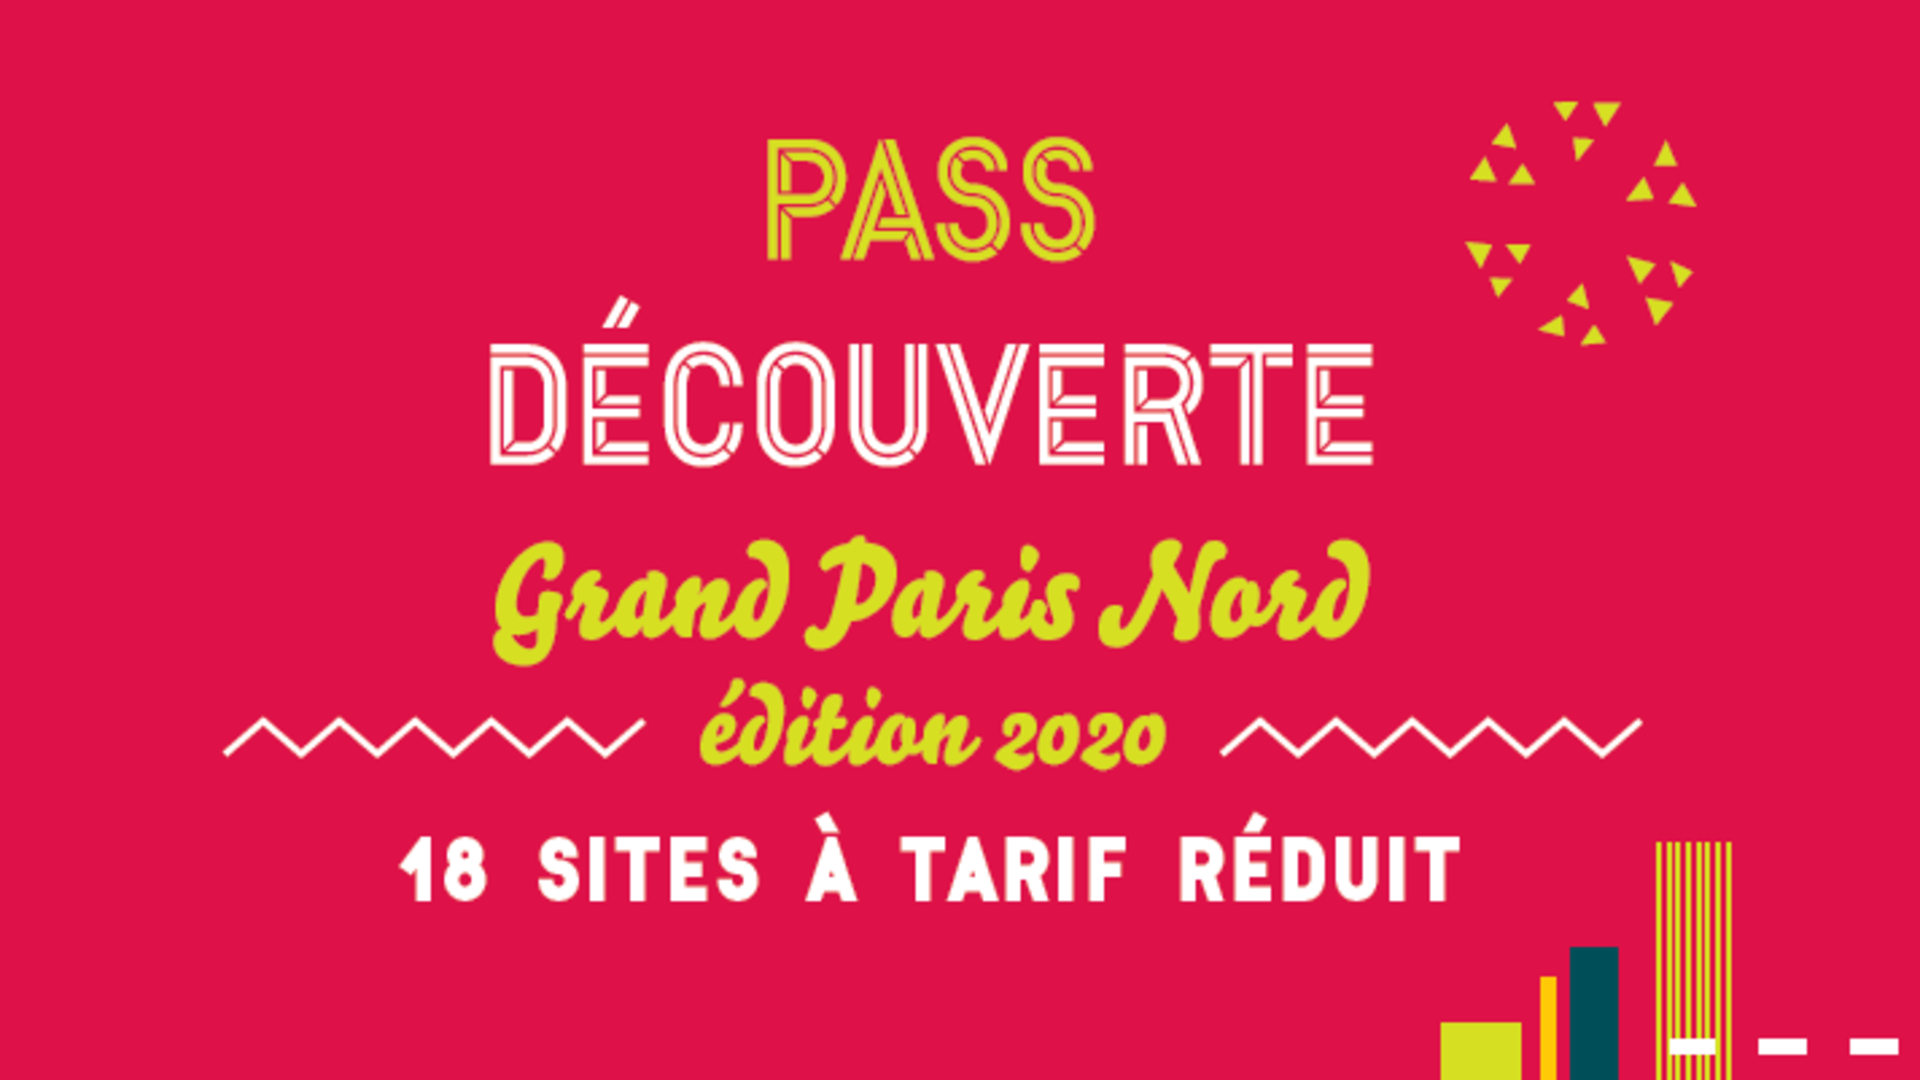 Pass découverte 2020 - Oficina de turismo Plaine Commune Grand Paris